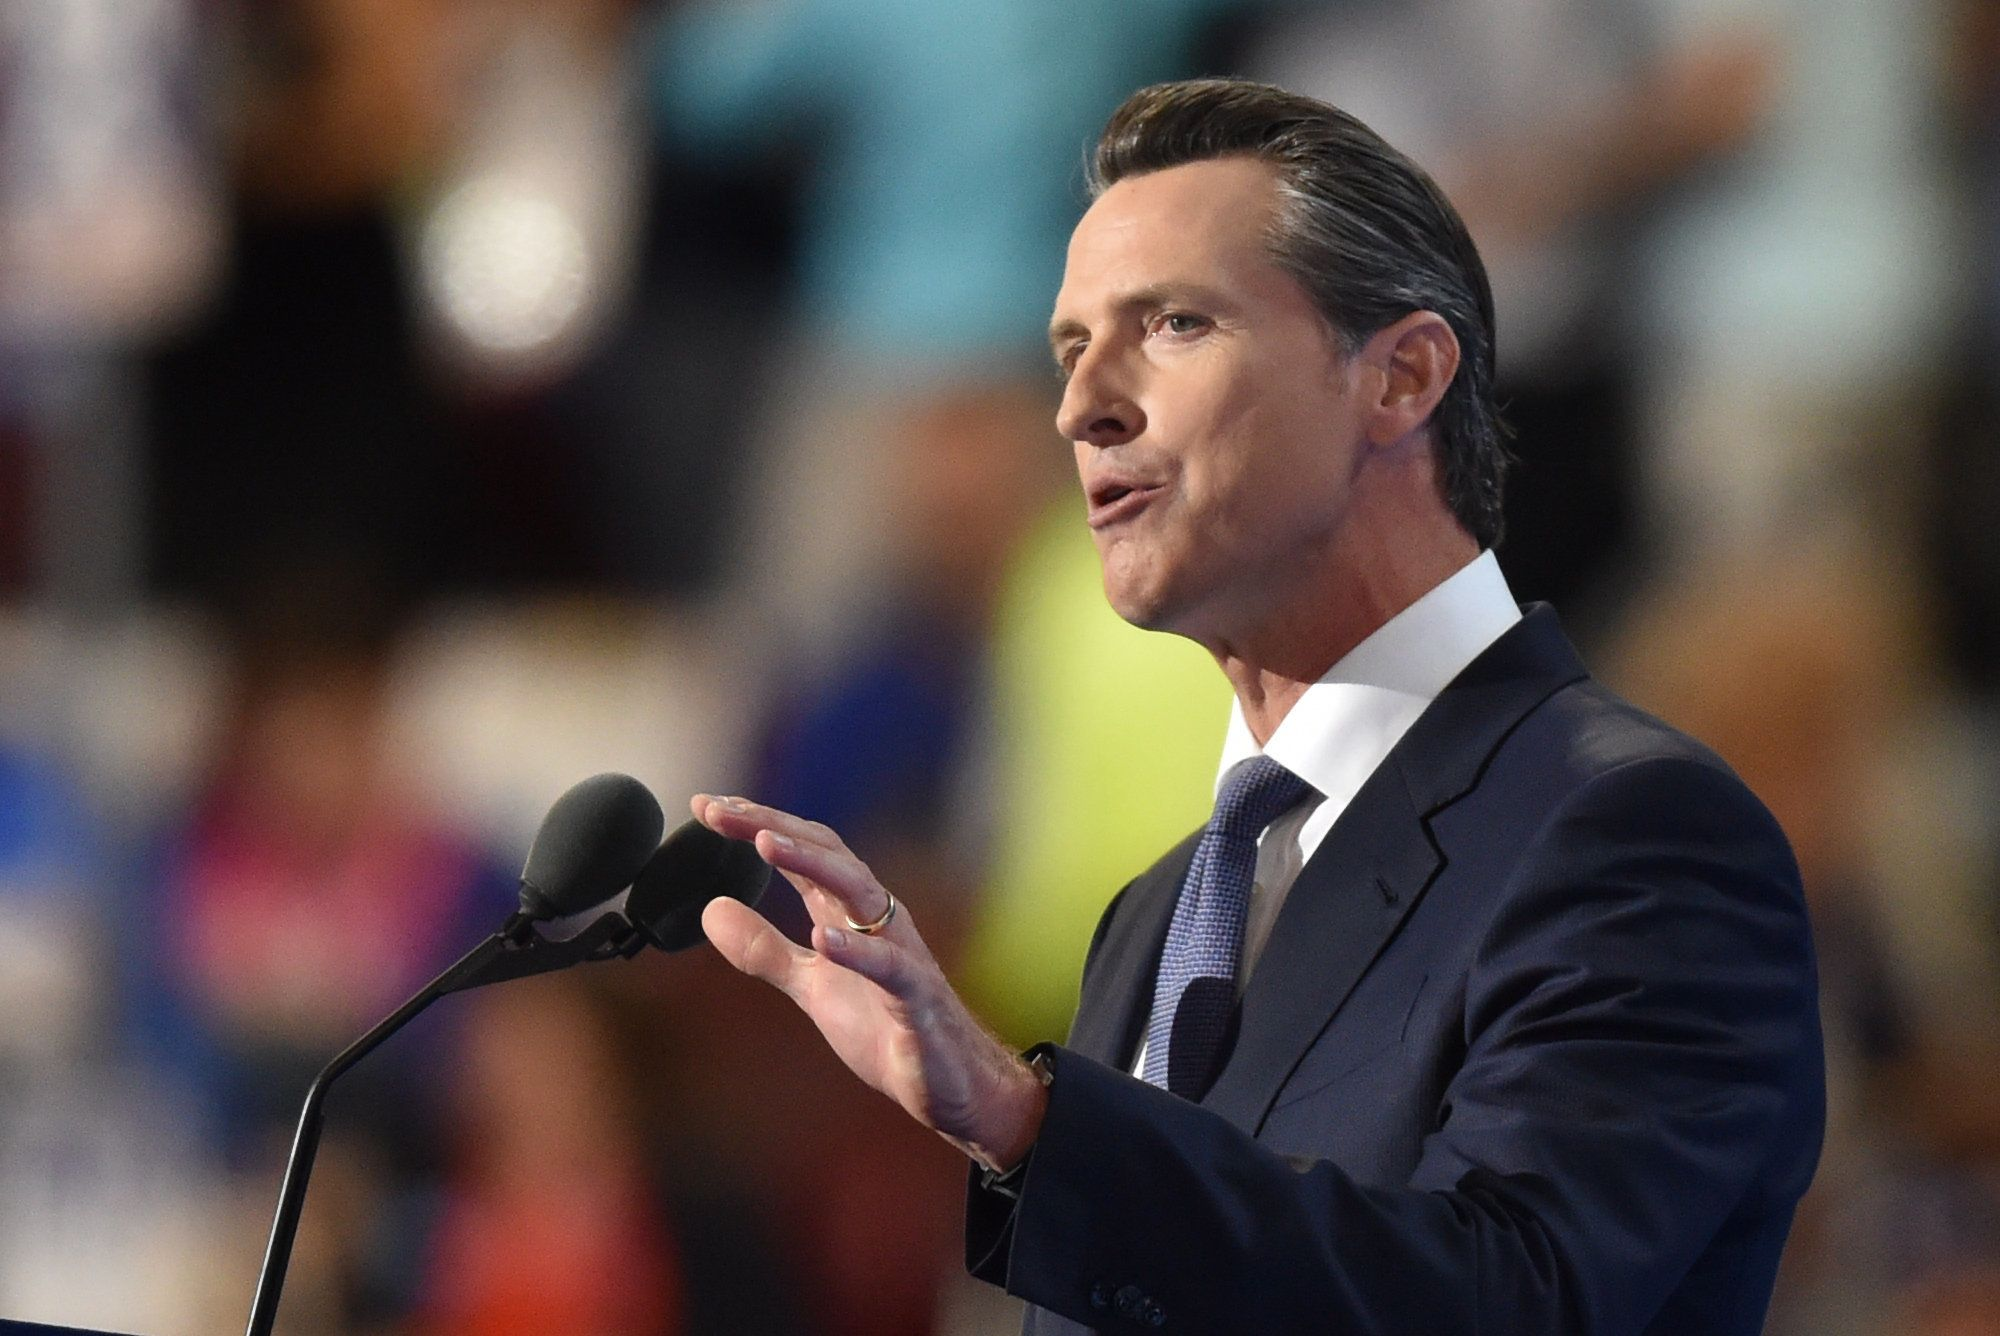 California Lt. Gov. Gavin Newsom (D) proposed the ballot measure implementing new restrictions on guns and ammunition.